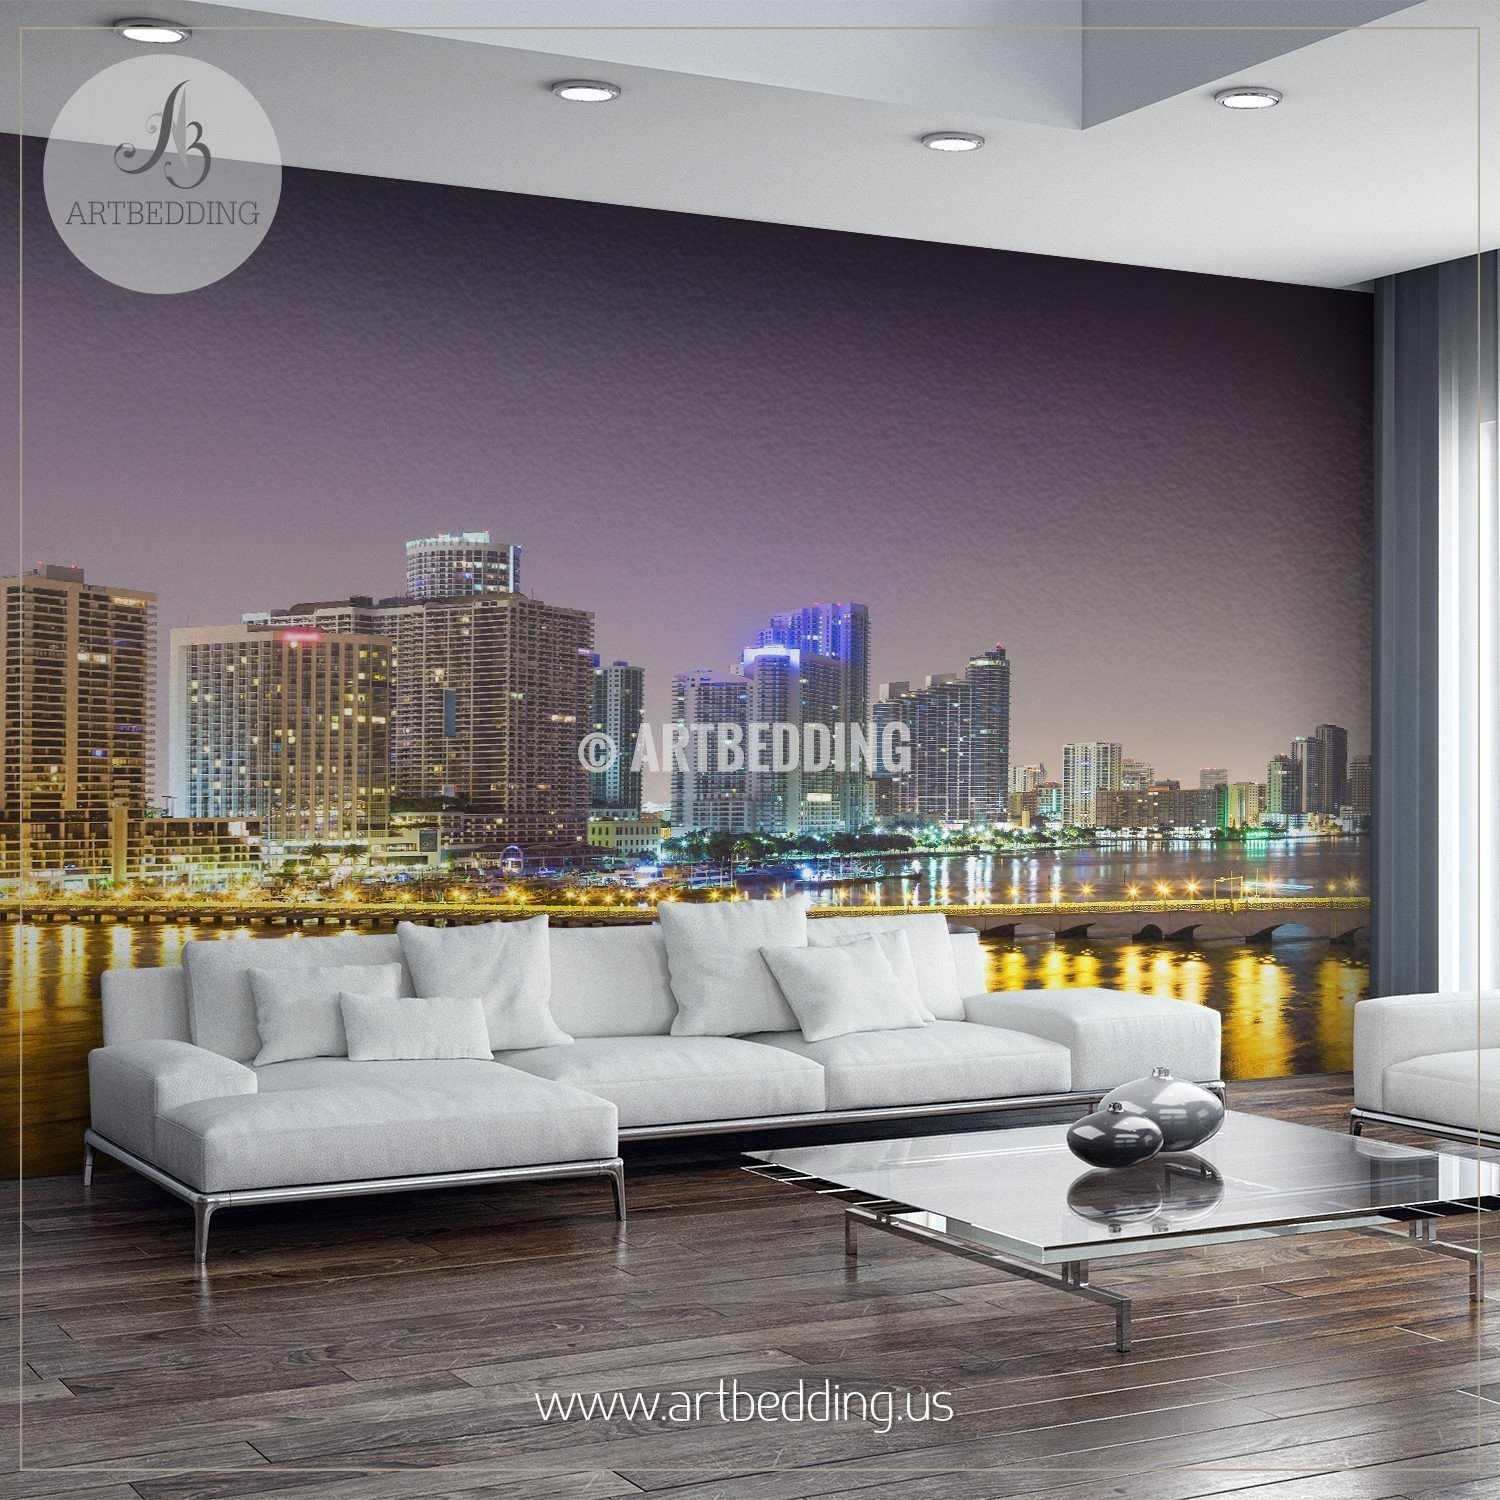 Downtown miami at night cityscape wall mural usa photo for Cityscape murals photo wall mural